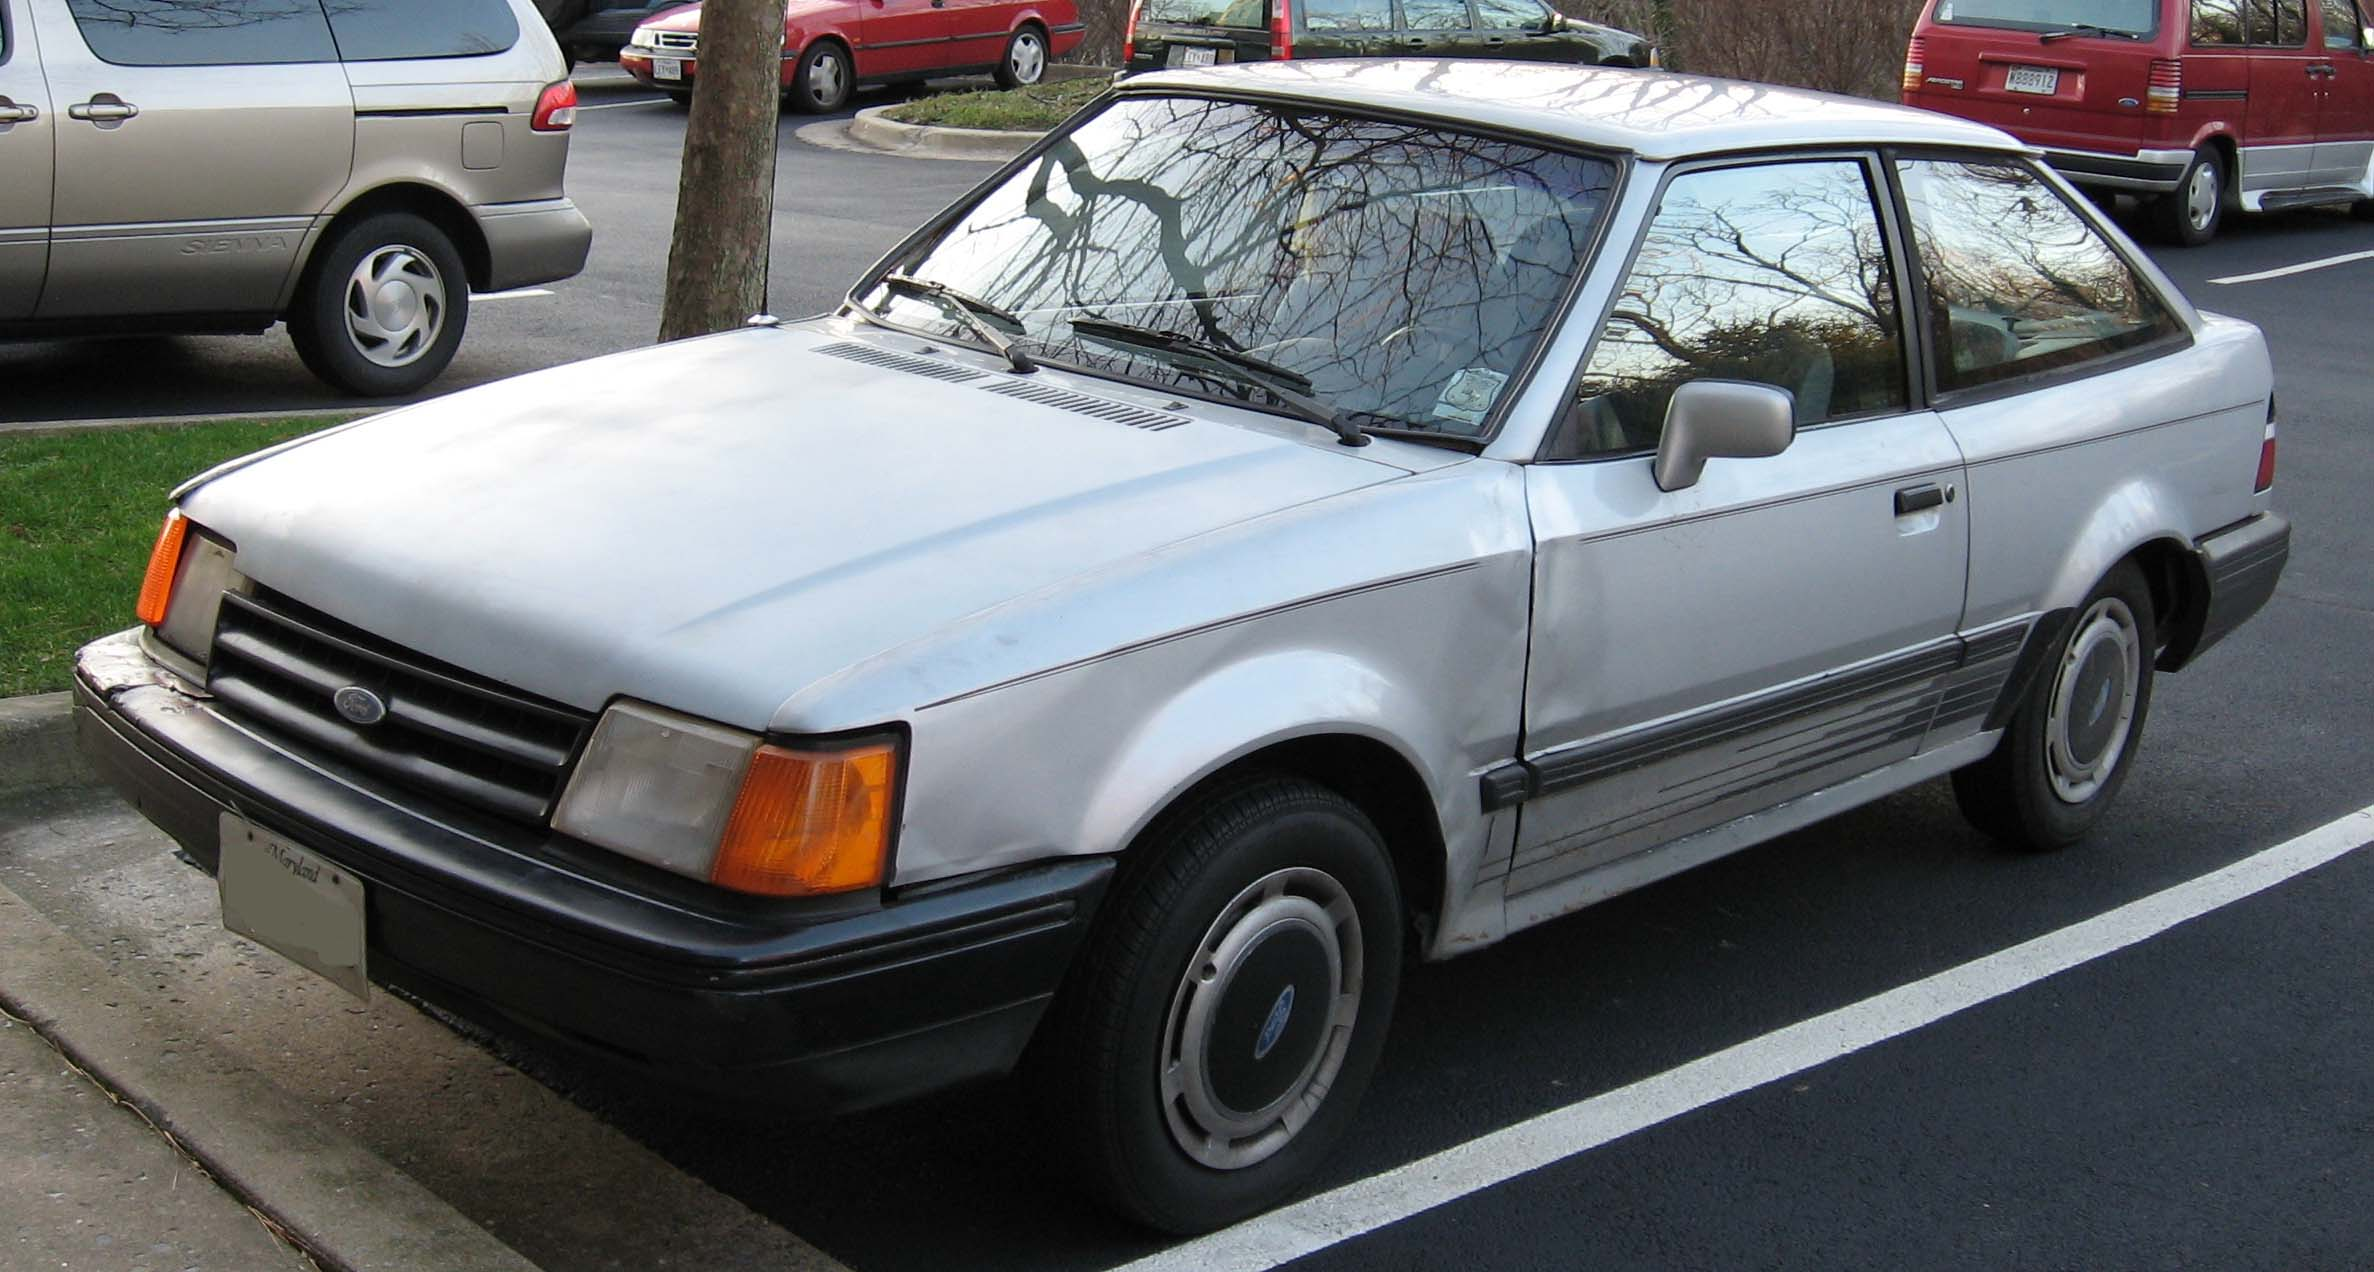 File:1988-90 Ford Escort.jpg